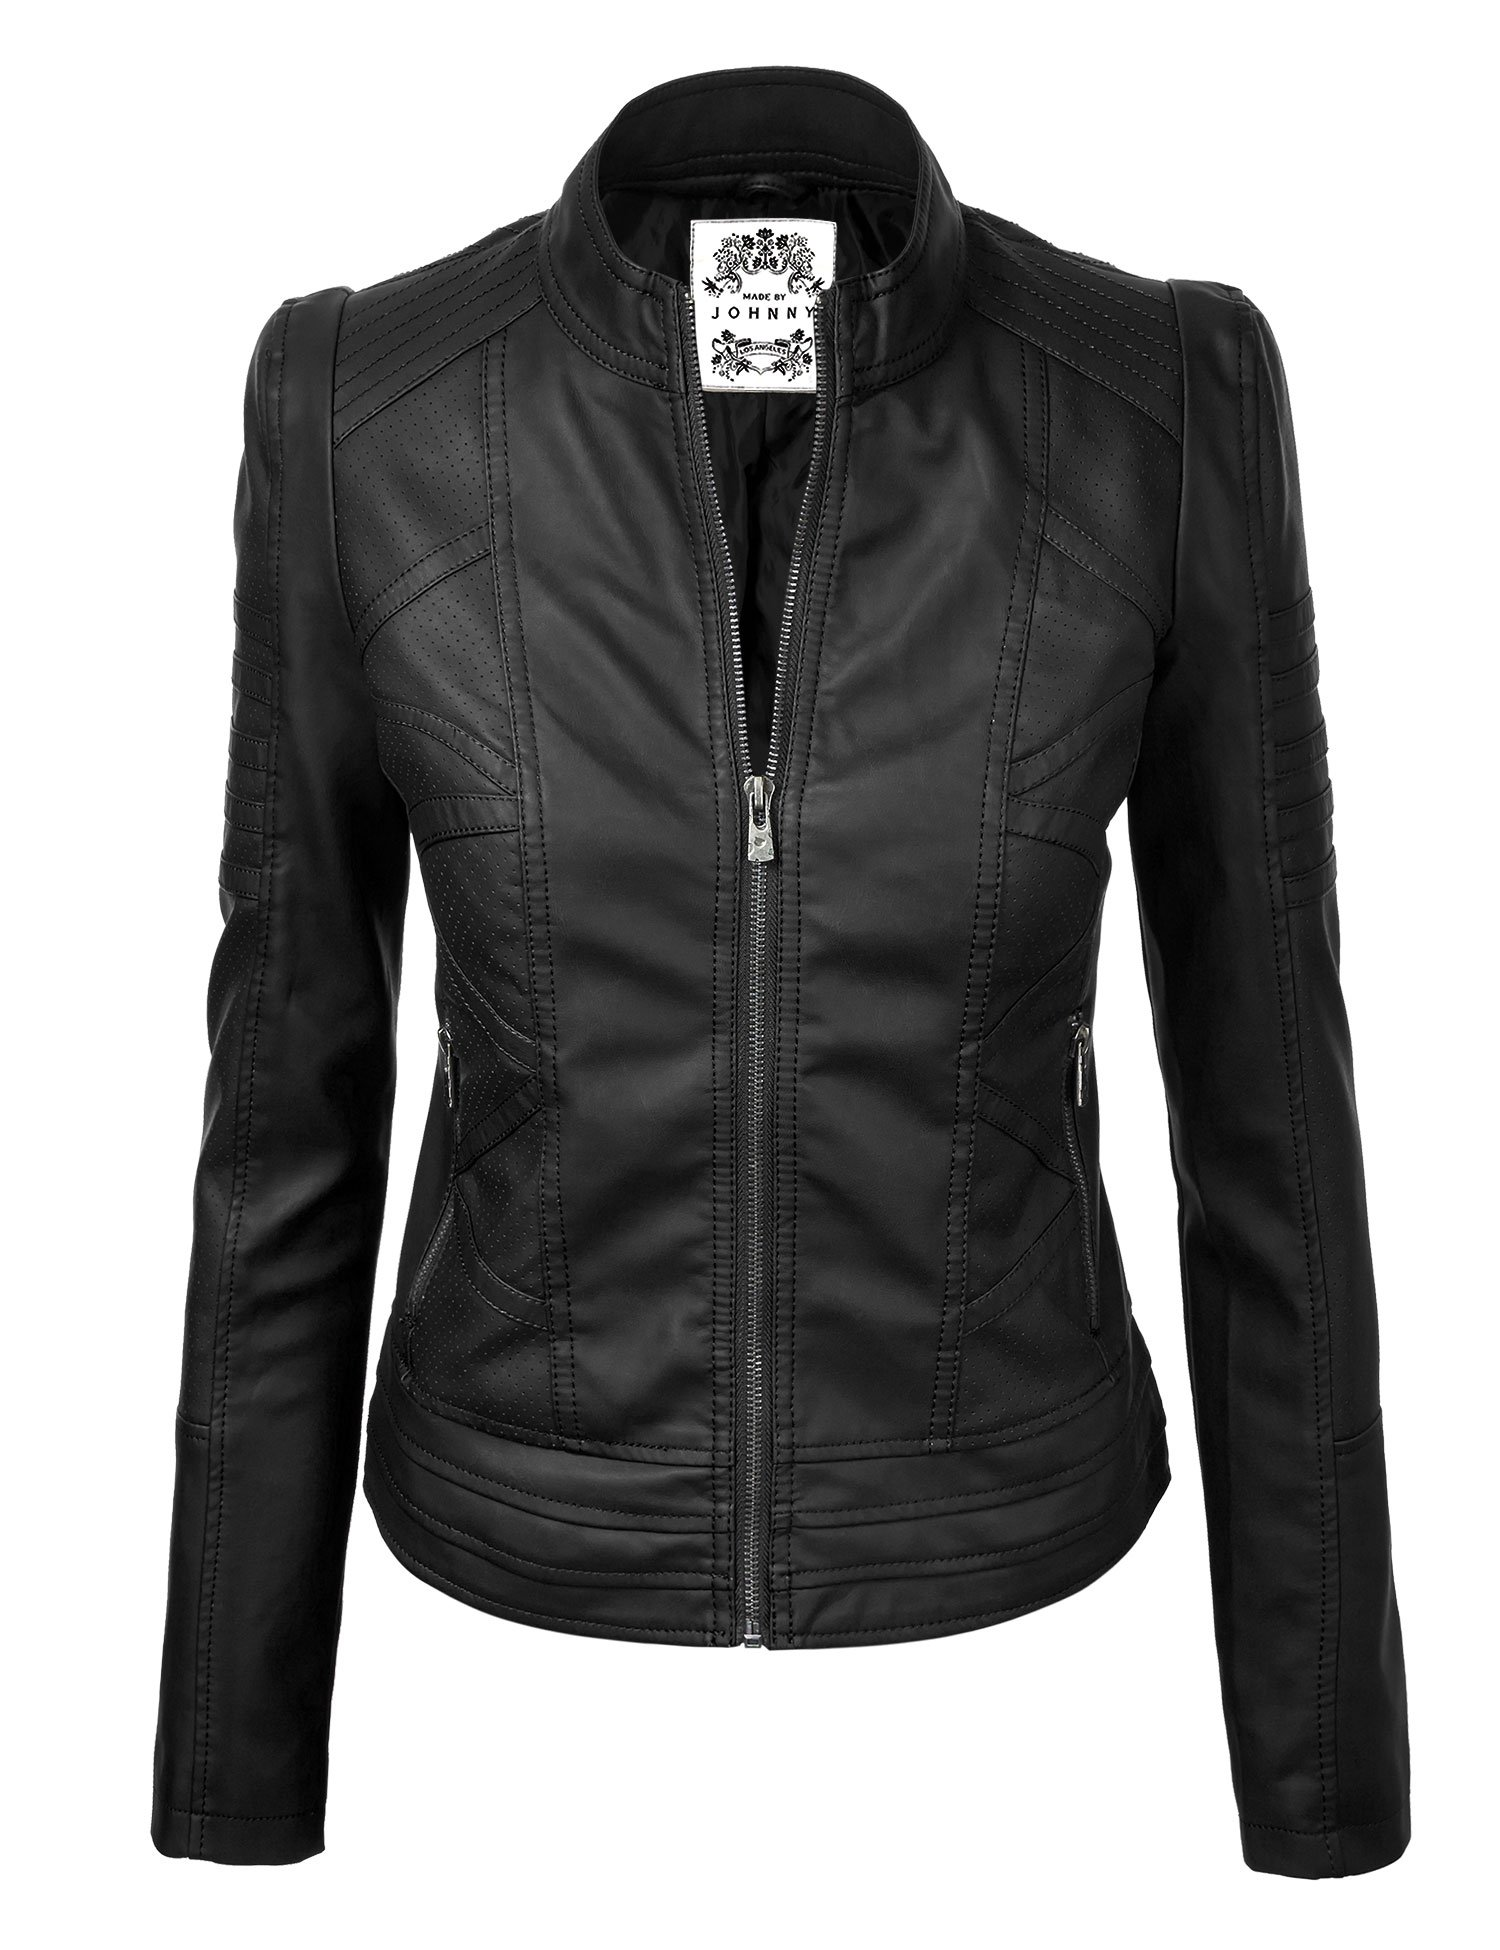 Made By Johnny WJC746 Womens Vegan Leather Motorcycle Jacket M Black